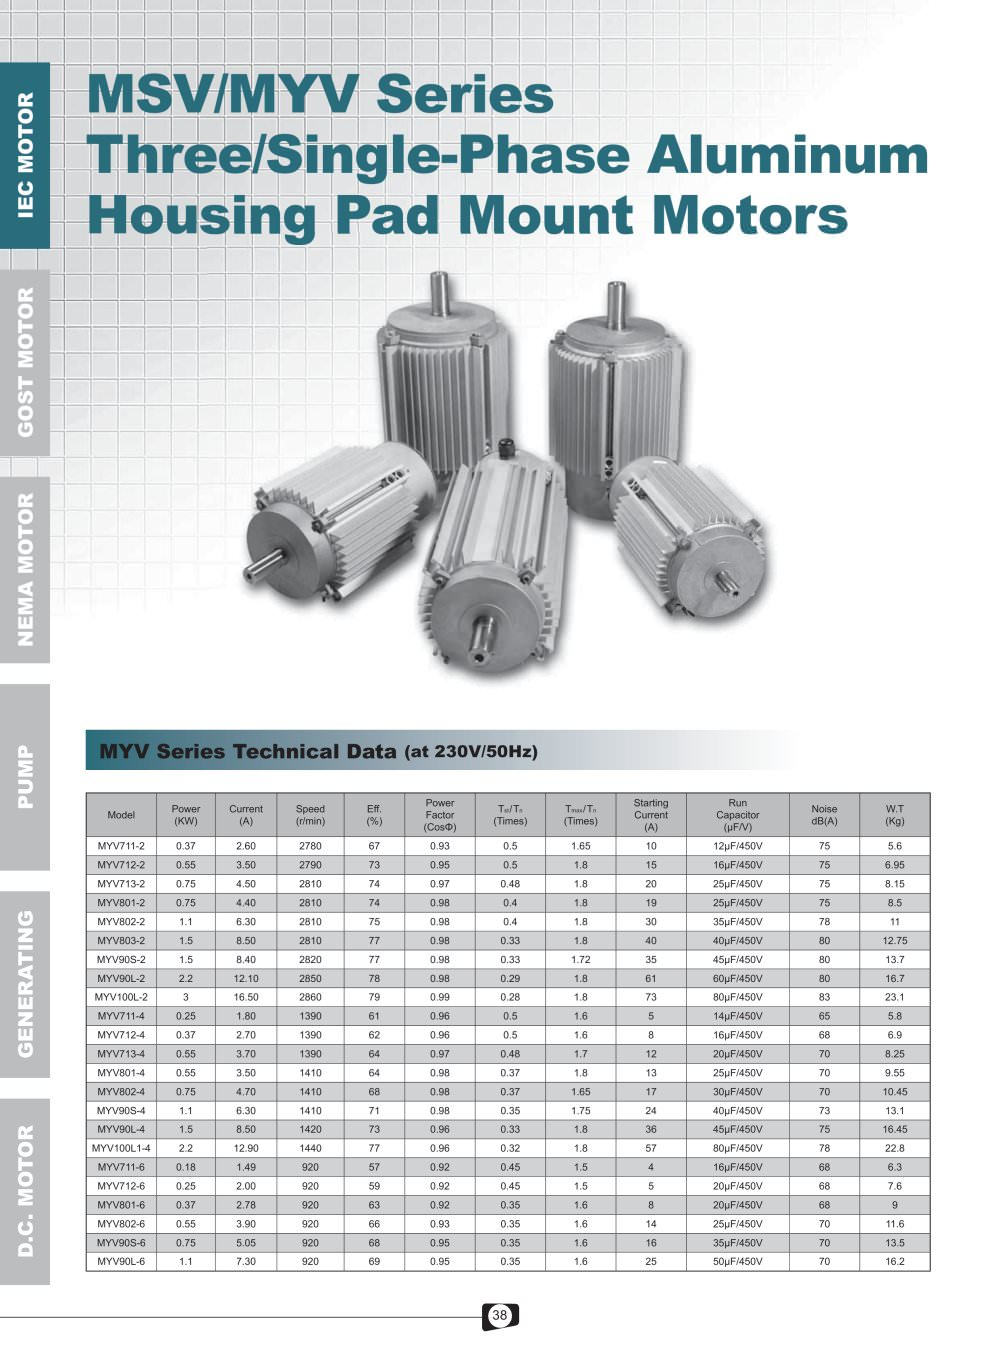 MSV-MYV Series 3-1-Phase Aluminum Pad Mount Motors - 1 / 4 Pages